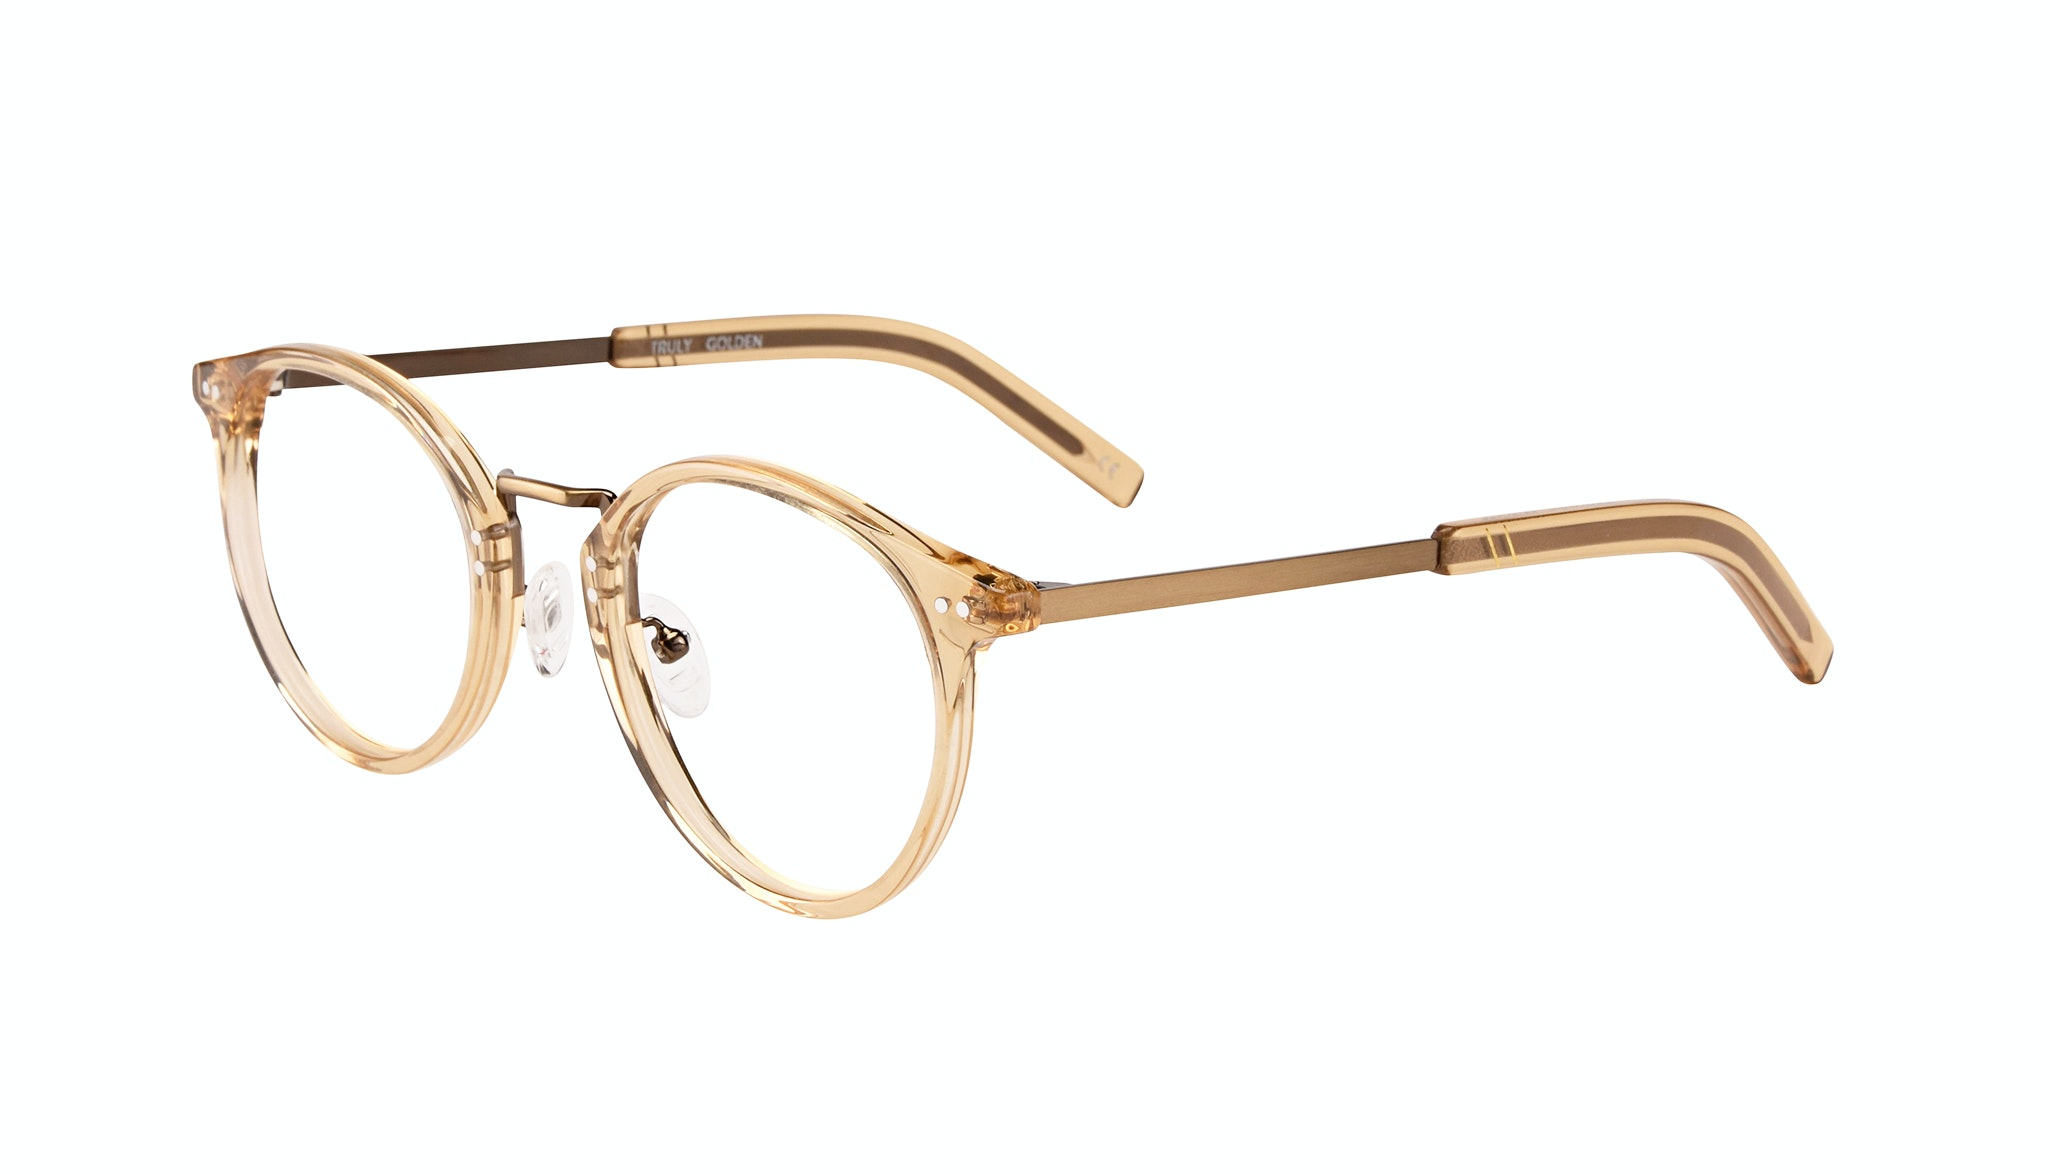 Affordable Fashion Glasses Round Eyeglasses Men Truly Golden Tilt